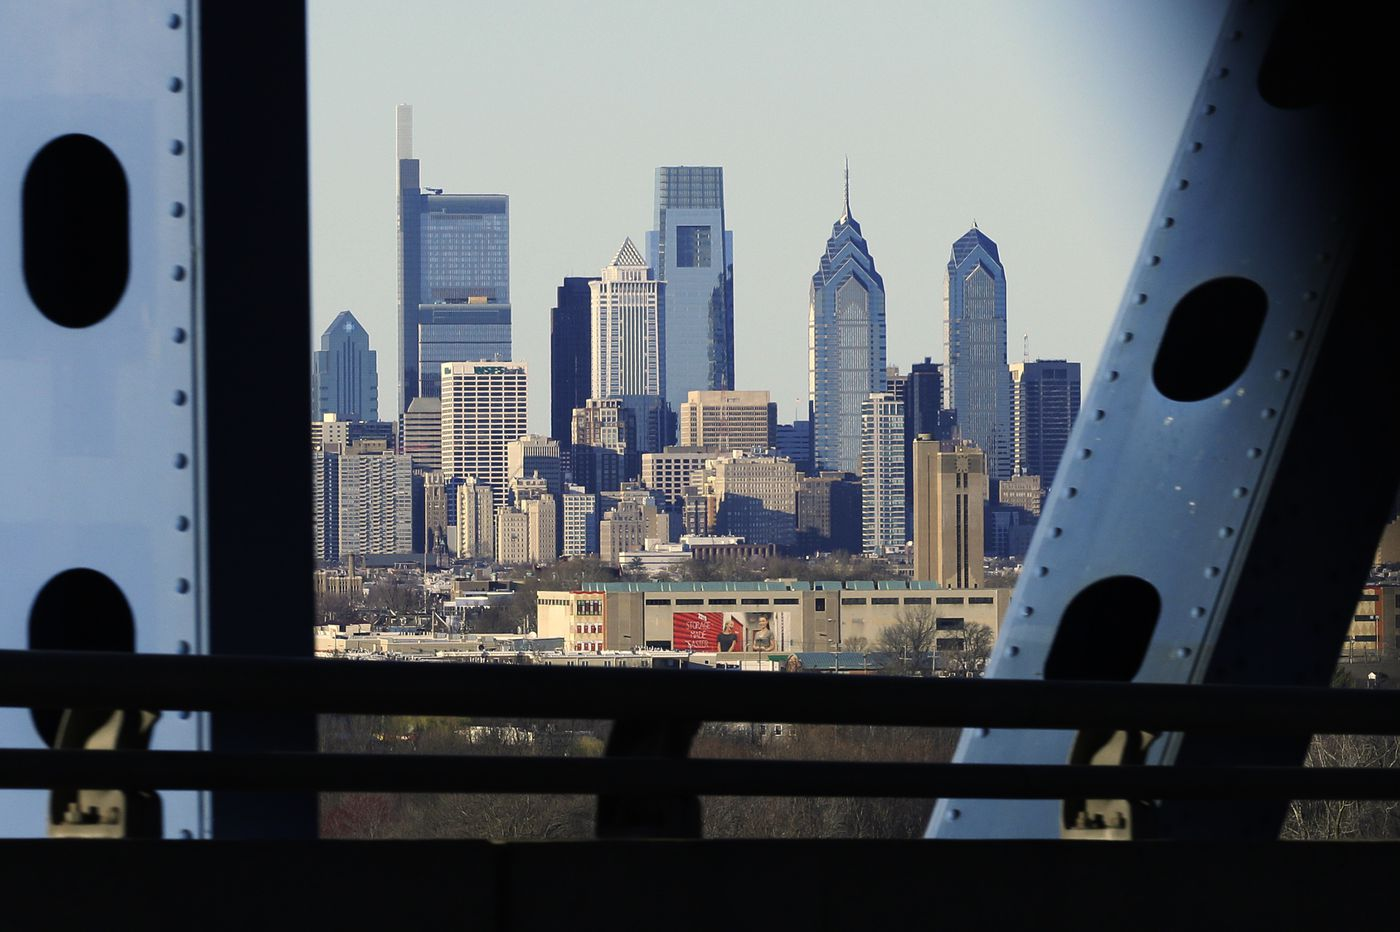 To protect Philly's most vulnerable kids, we must strengthen neighborhoods | Opinion